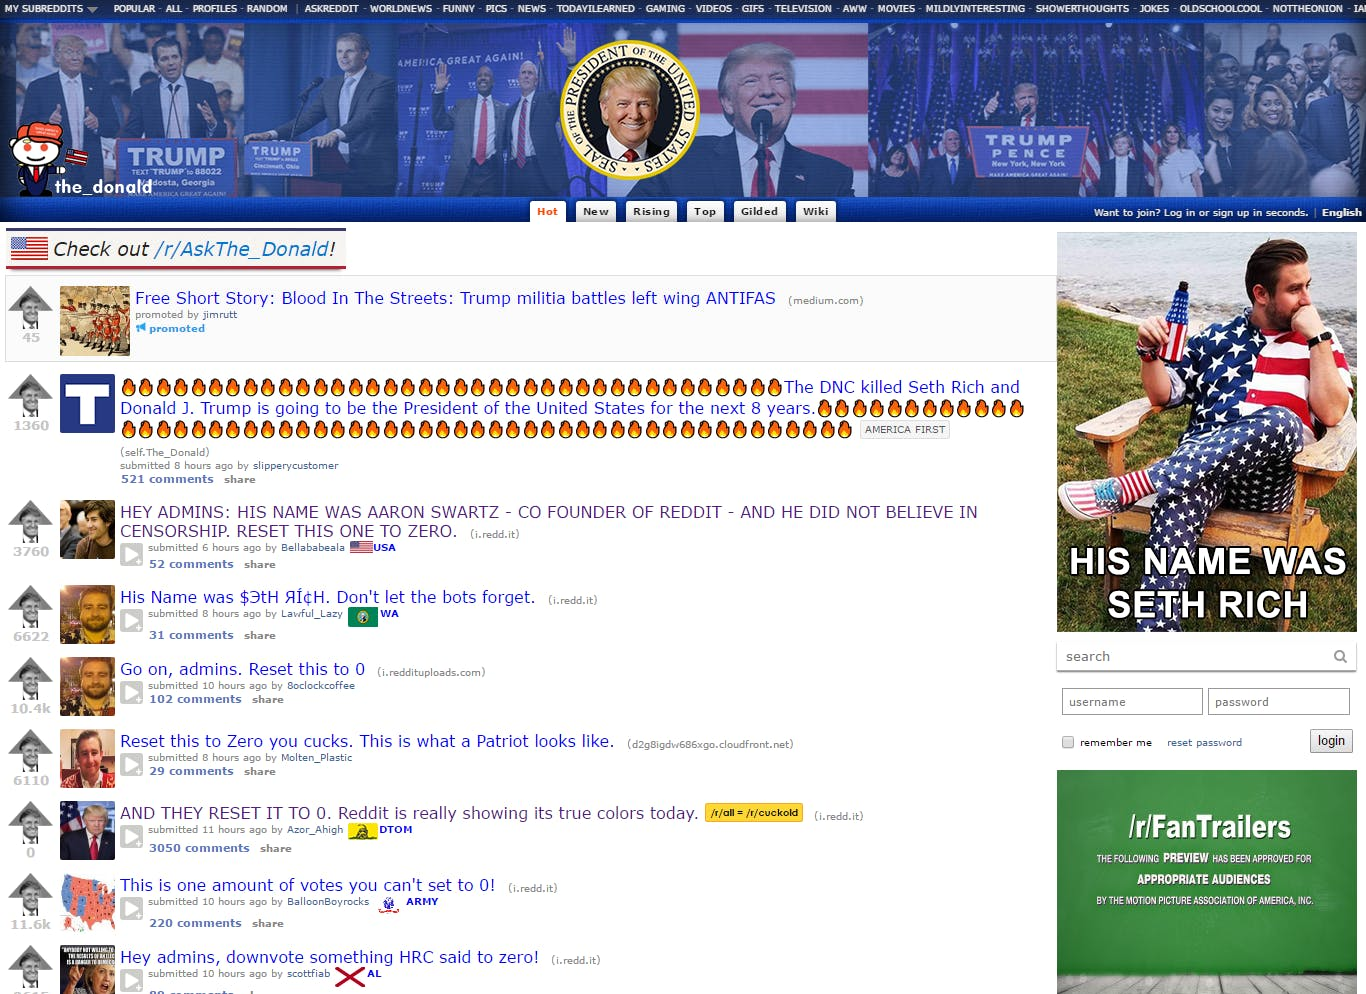 Reddit the Donald and 4chan : Seth Rich murder conspiracy